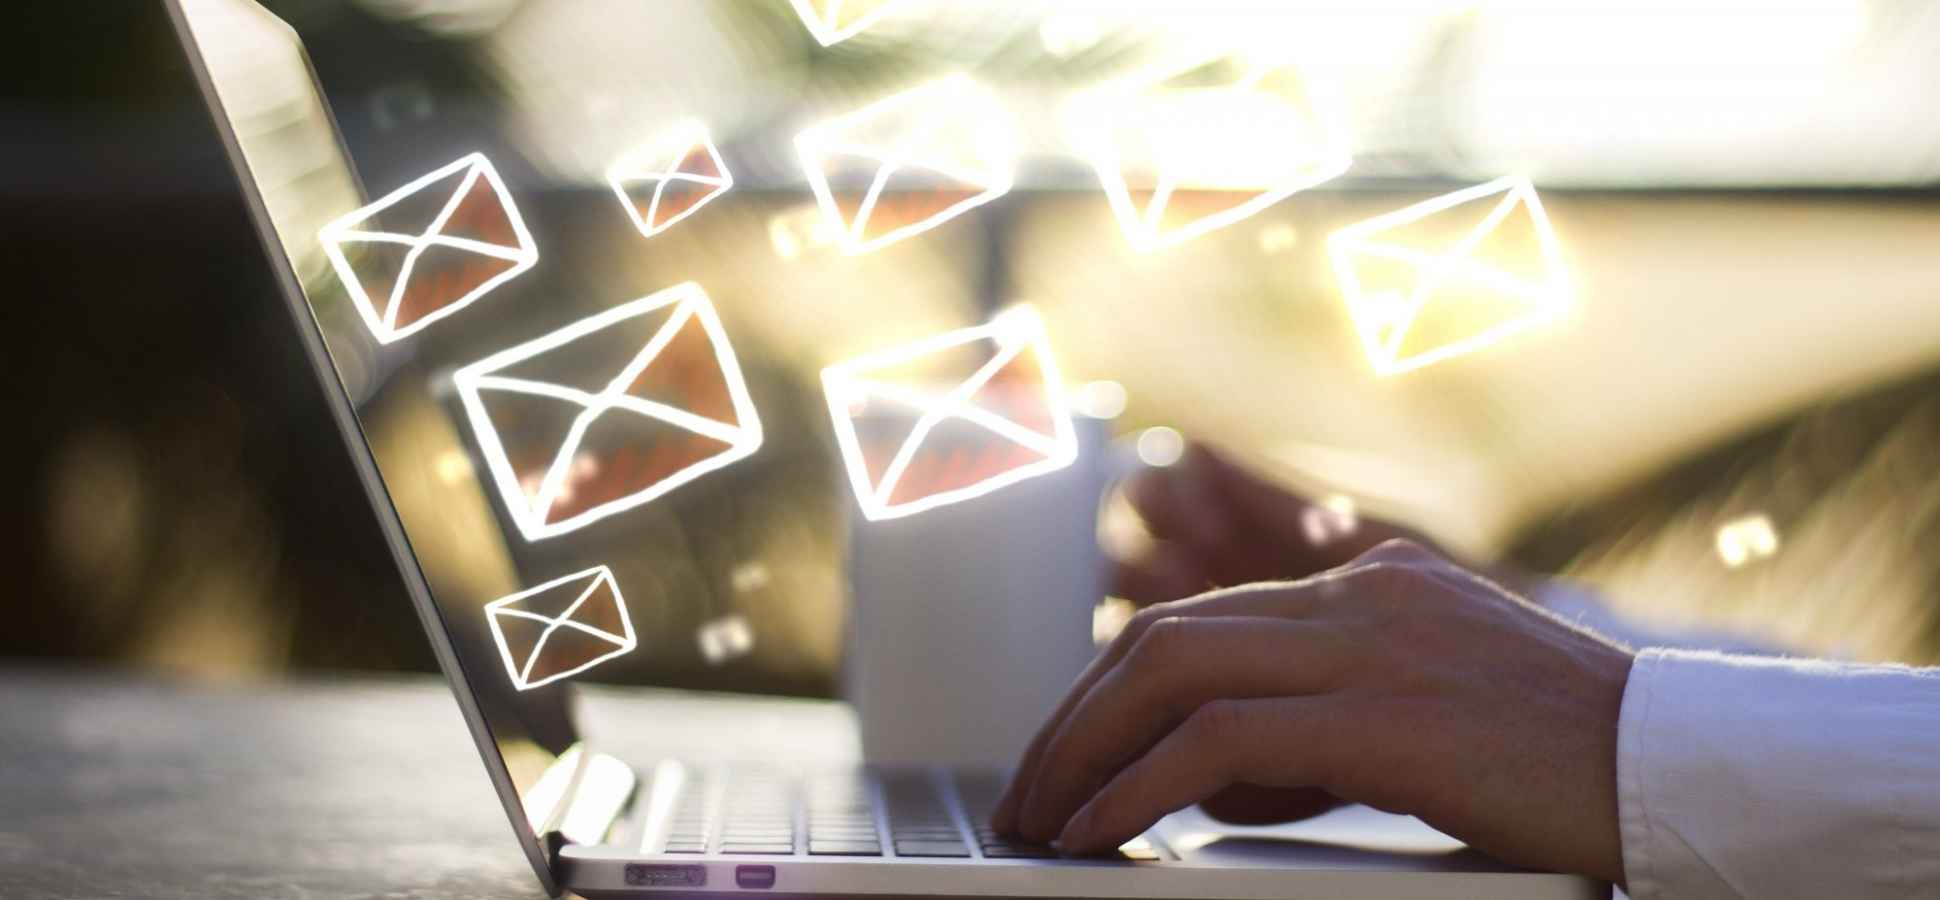 7 Email Hacks to Use When You Need to Get a Response